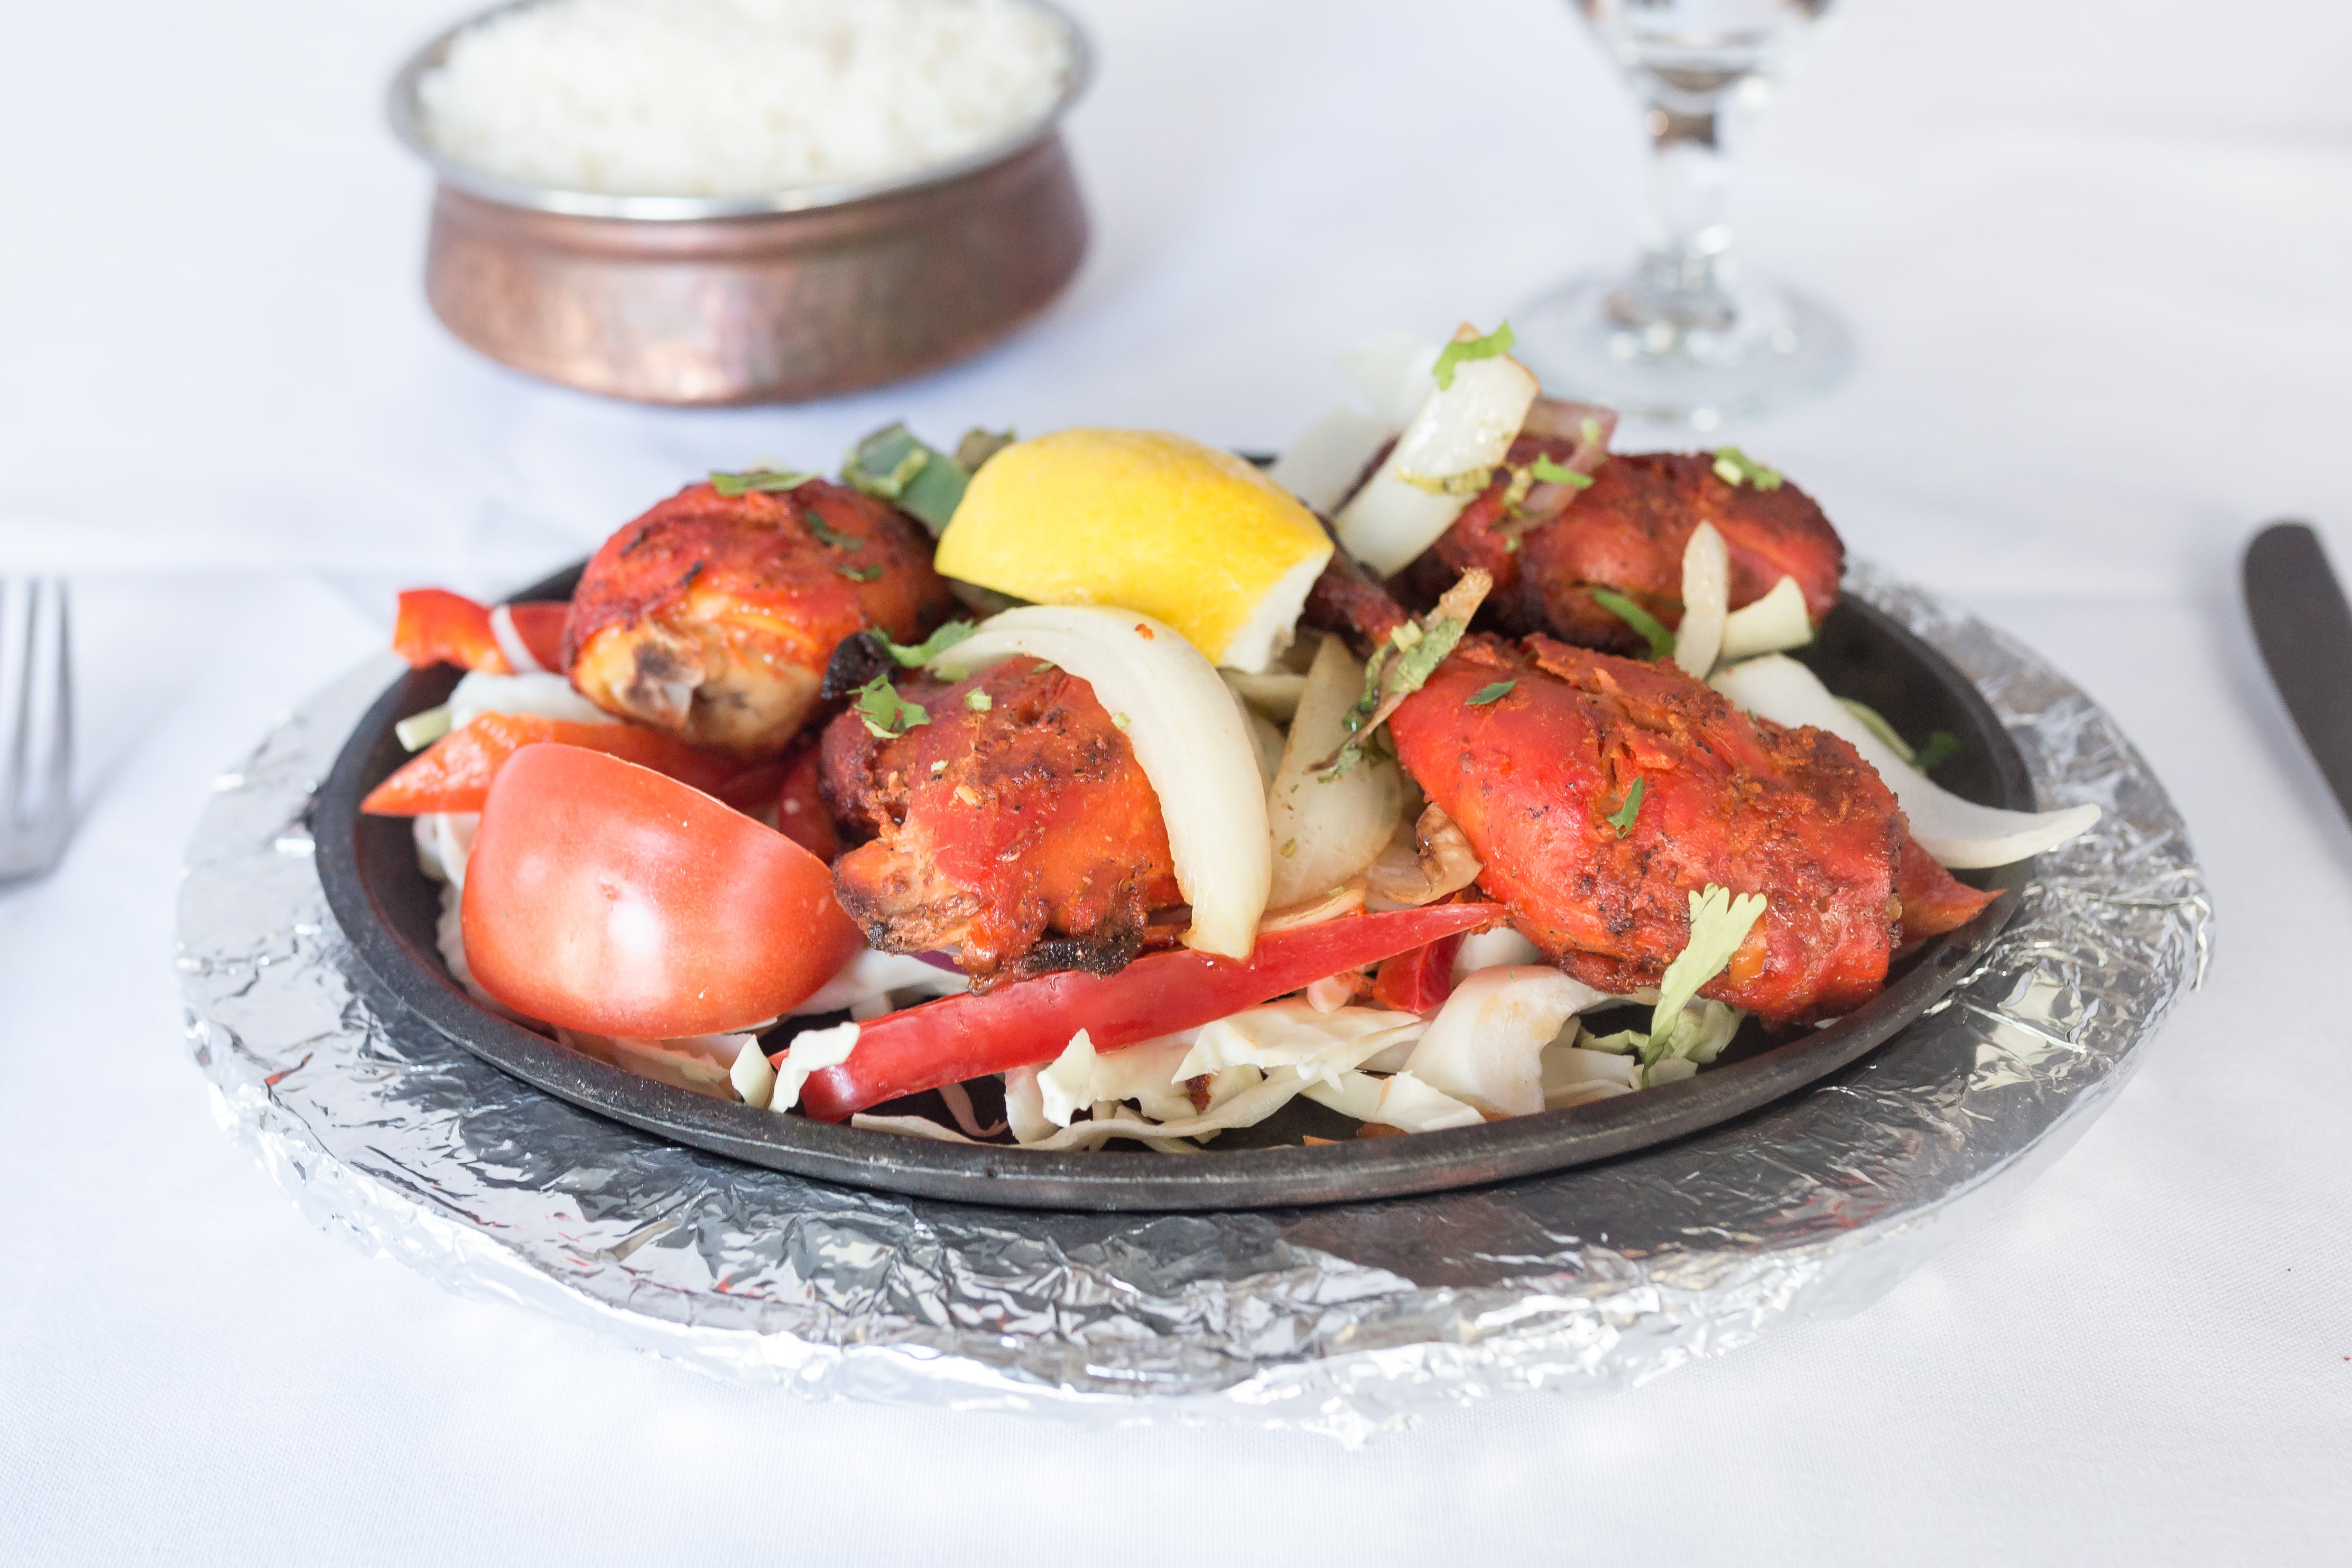 Tandoori Chicken from Bollywood Grill in Milwaukee, WI